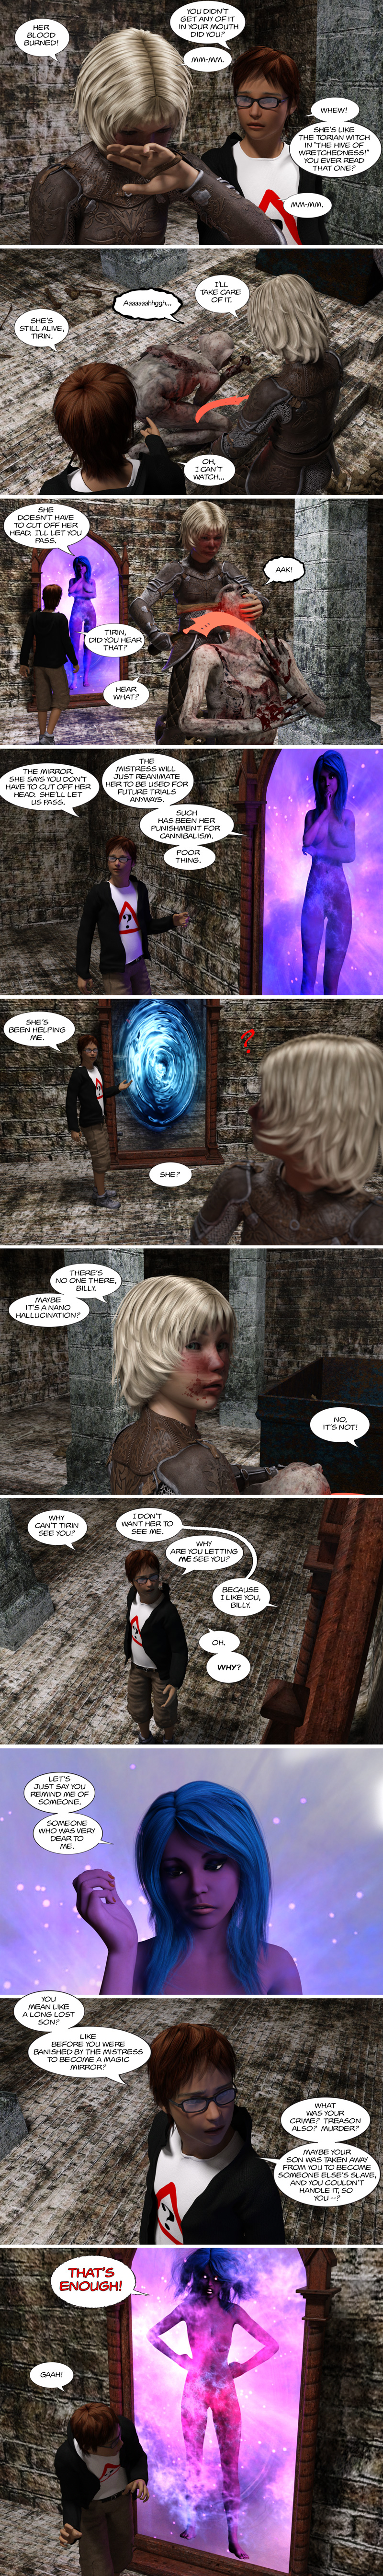 Chapter 12, page 29